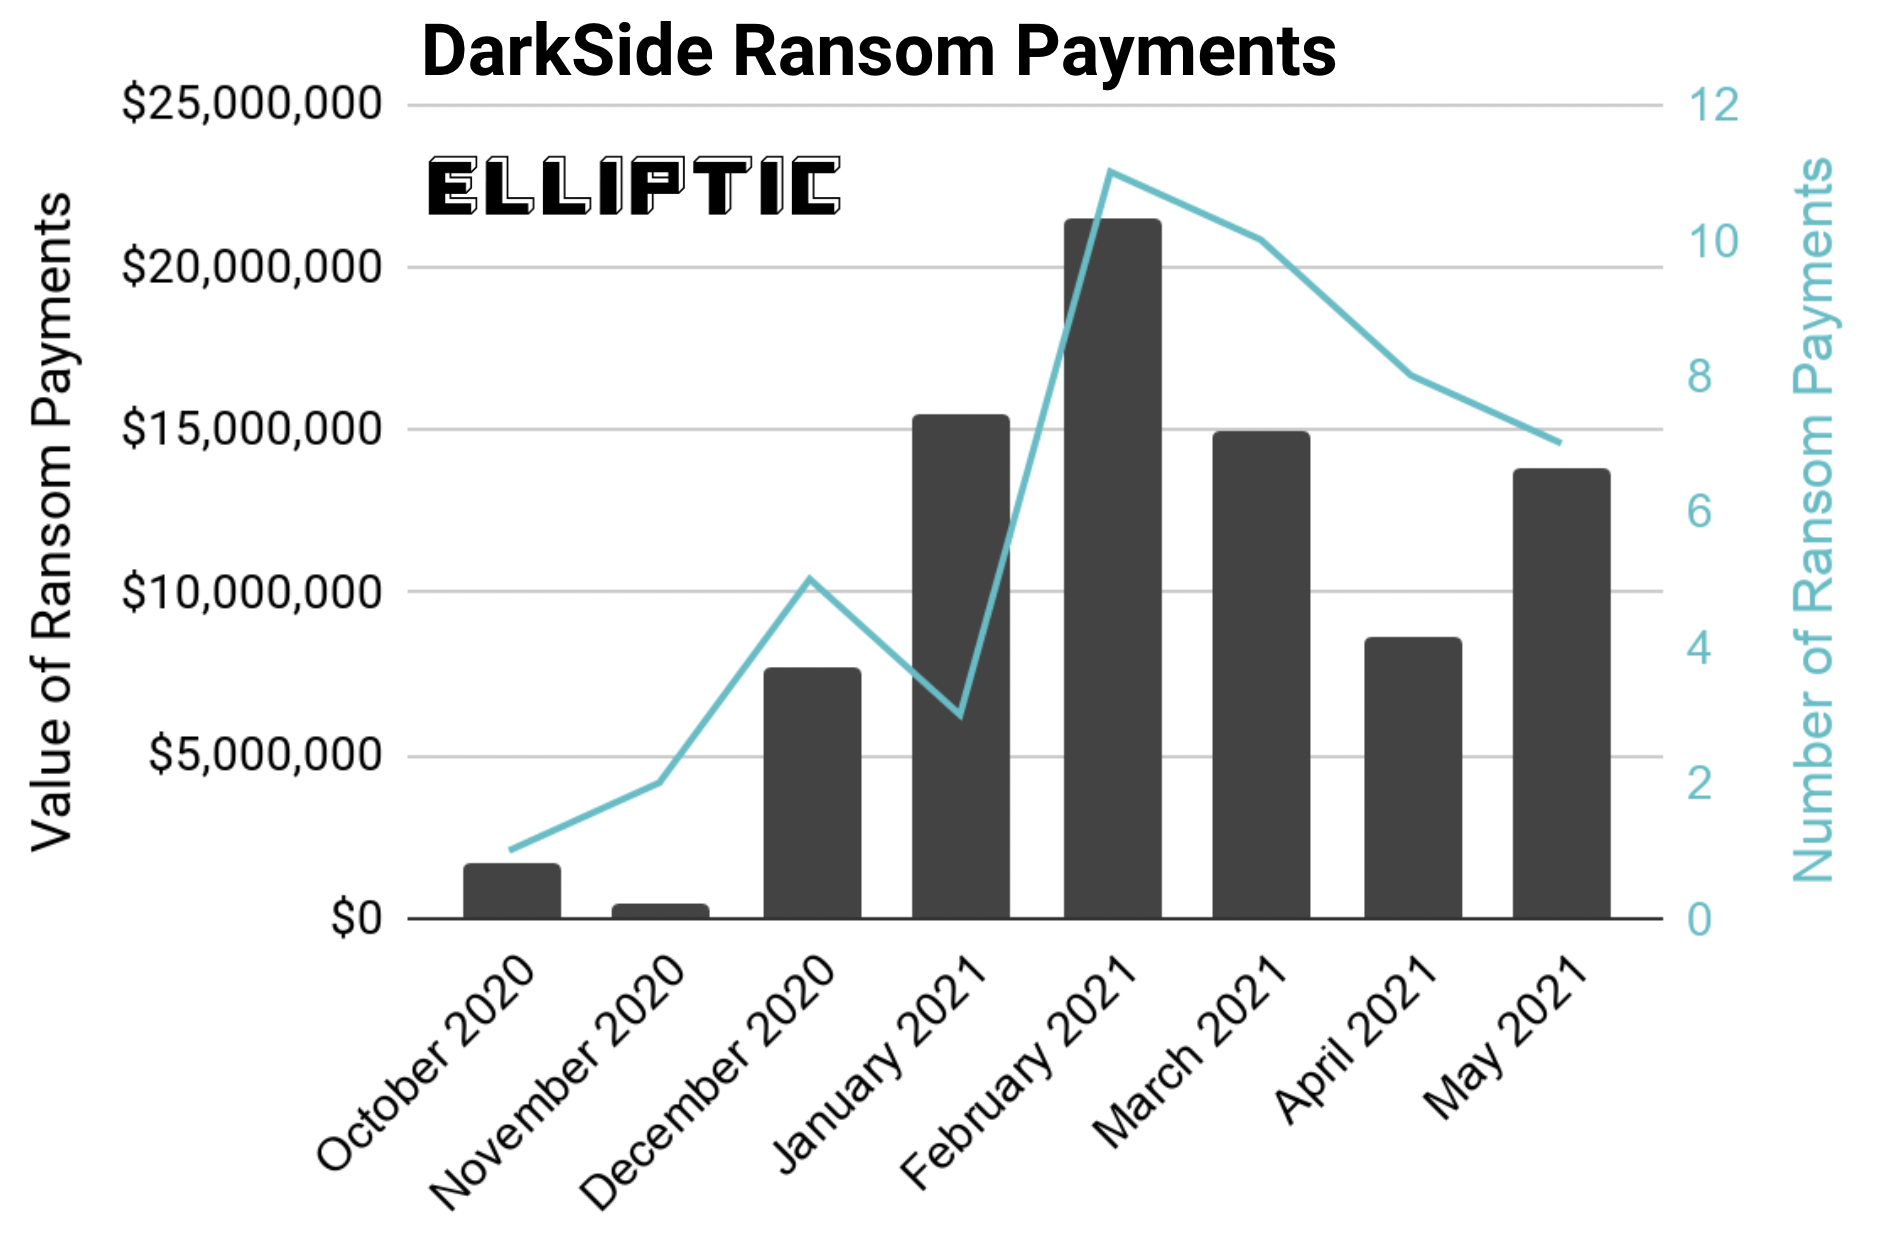 Value and number of ransom payments